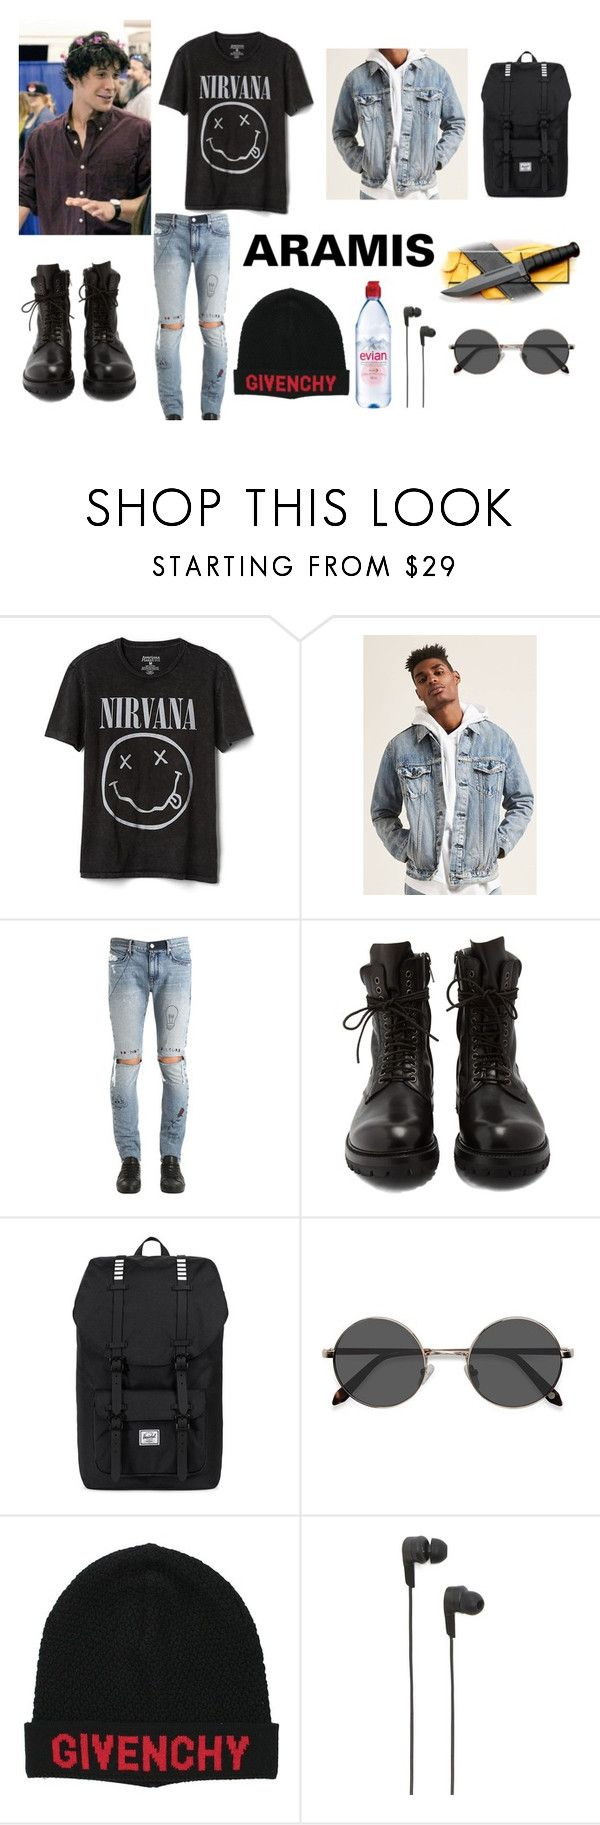 """Untitled #155"" by lgbtsymbol ❤ liked on Polyvore featuring Gap, 21 Men, RtA, Rick Owens, Herschel Supply Co., EyeBuyDirect.com, Givenchy, B&O Play, Evian and Morley"